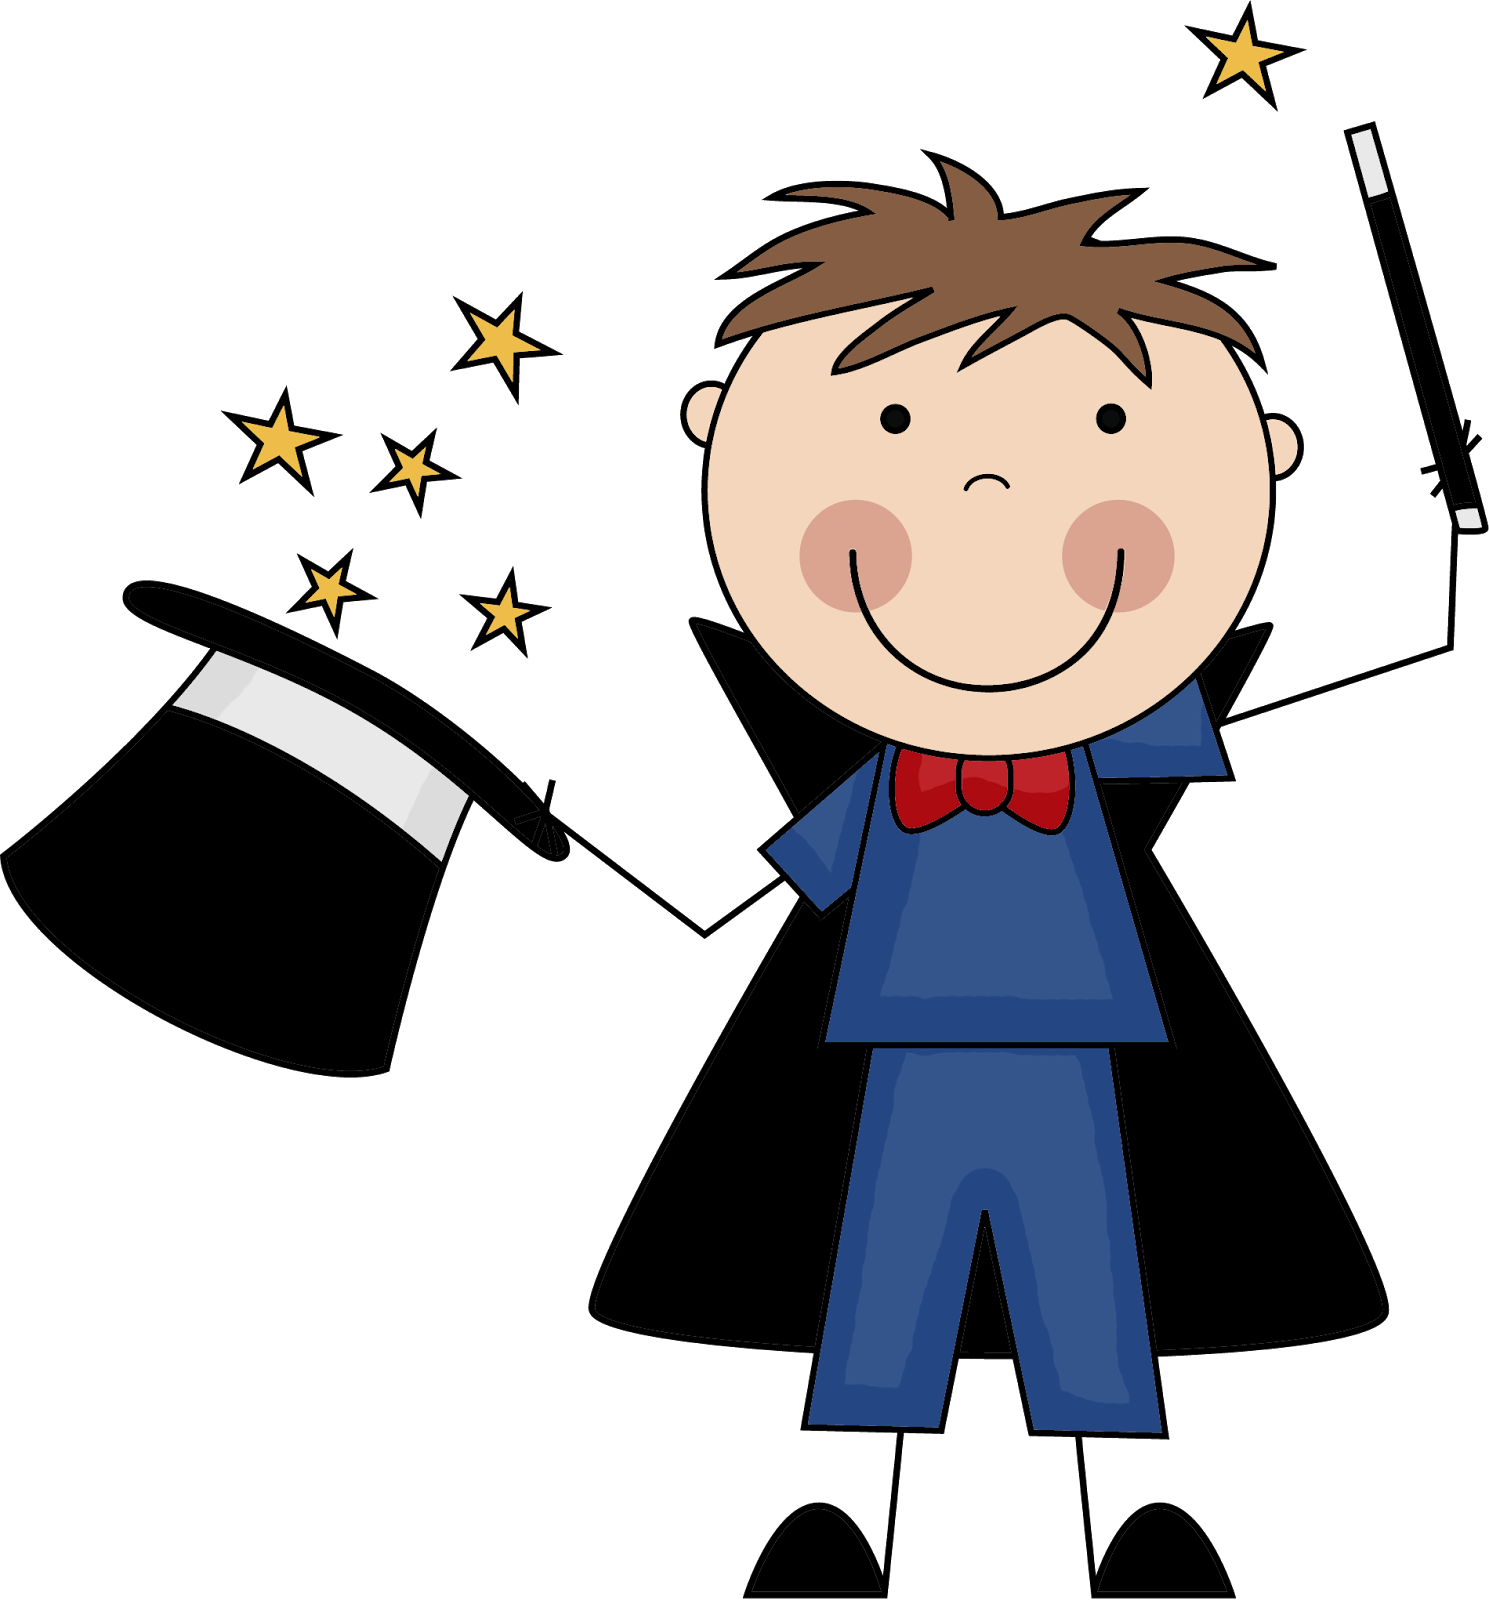 Magic E Clipart - ClipArt Best